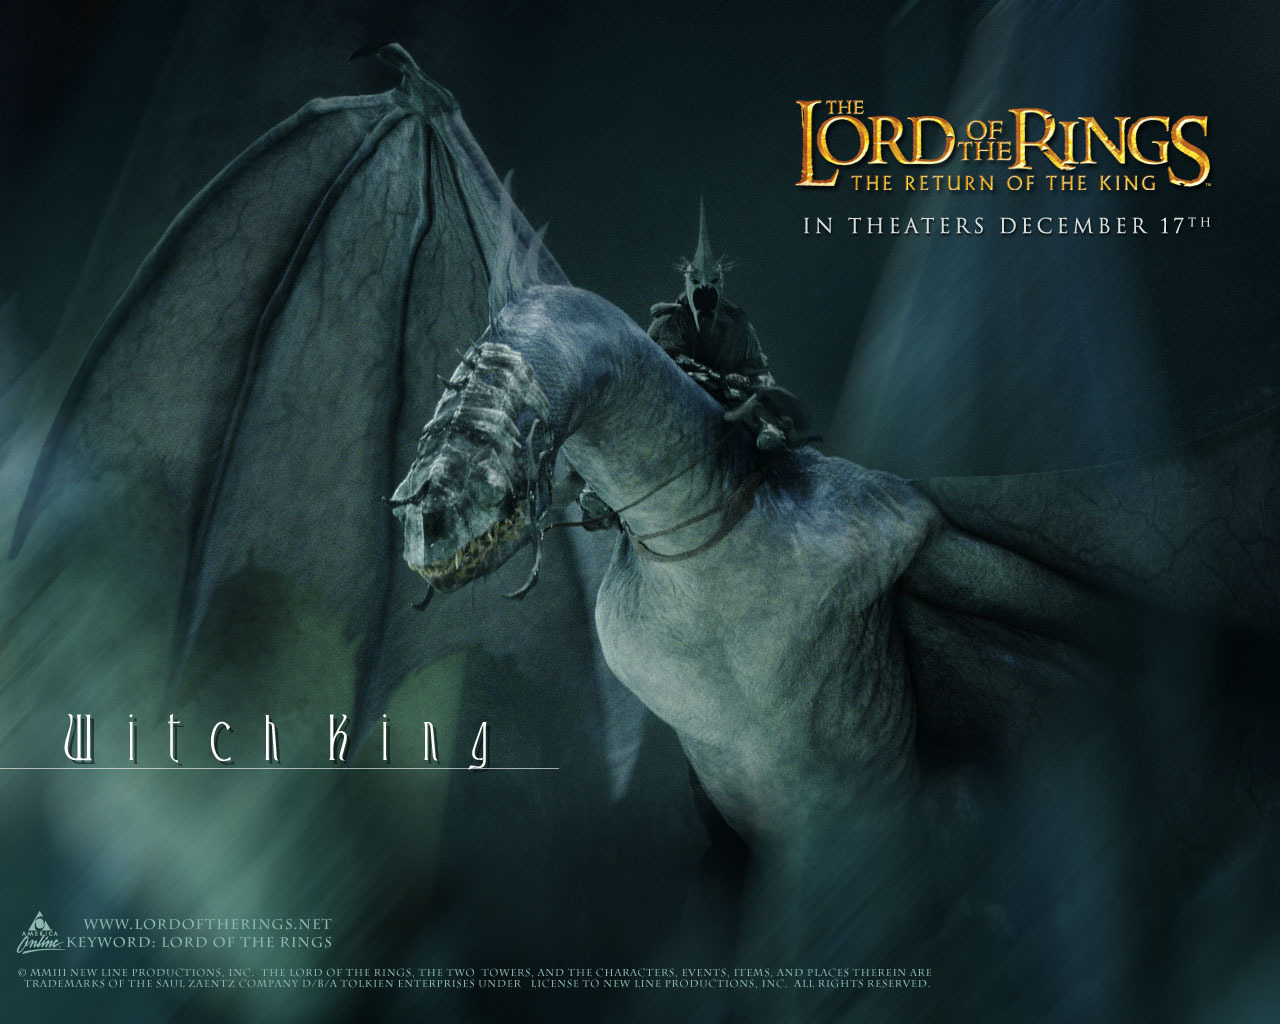 Lord of the rings Wallpapers and Backgrounds 1280x1024